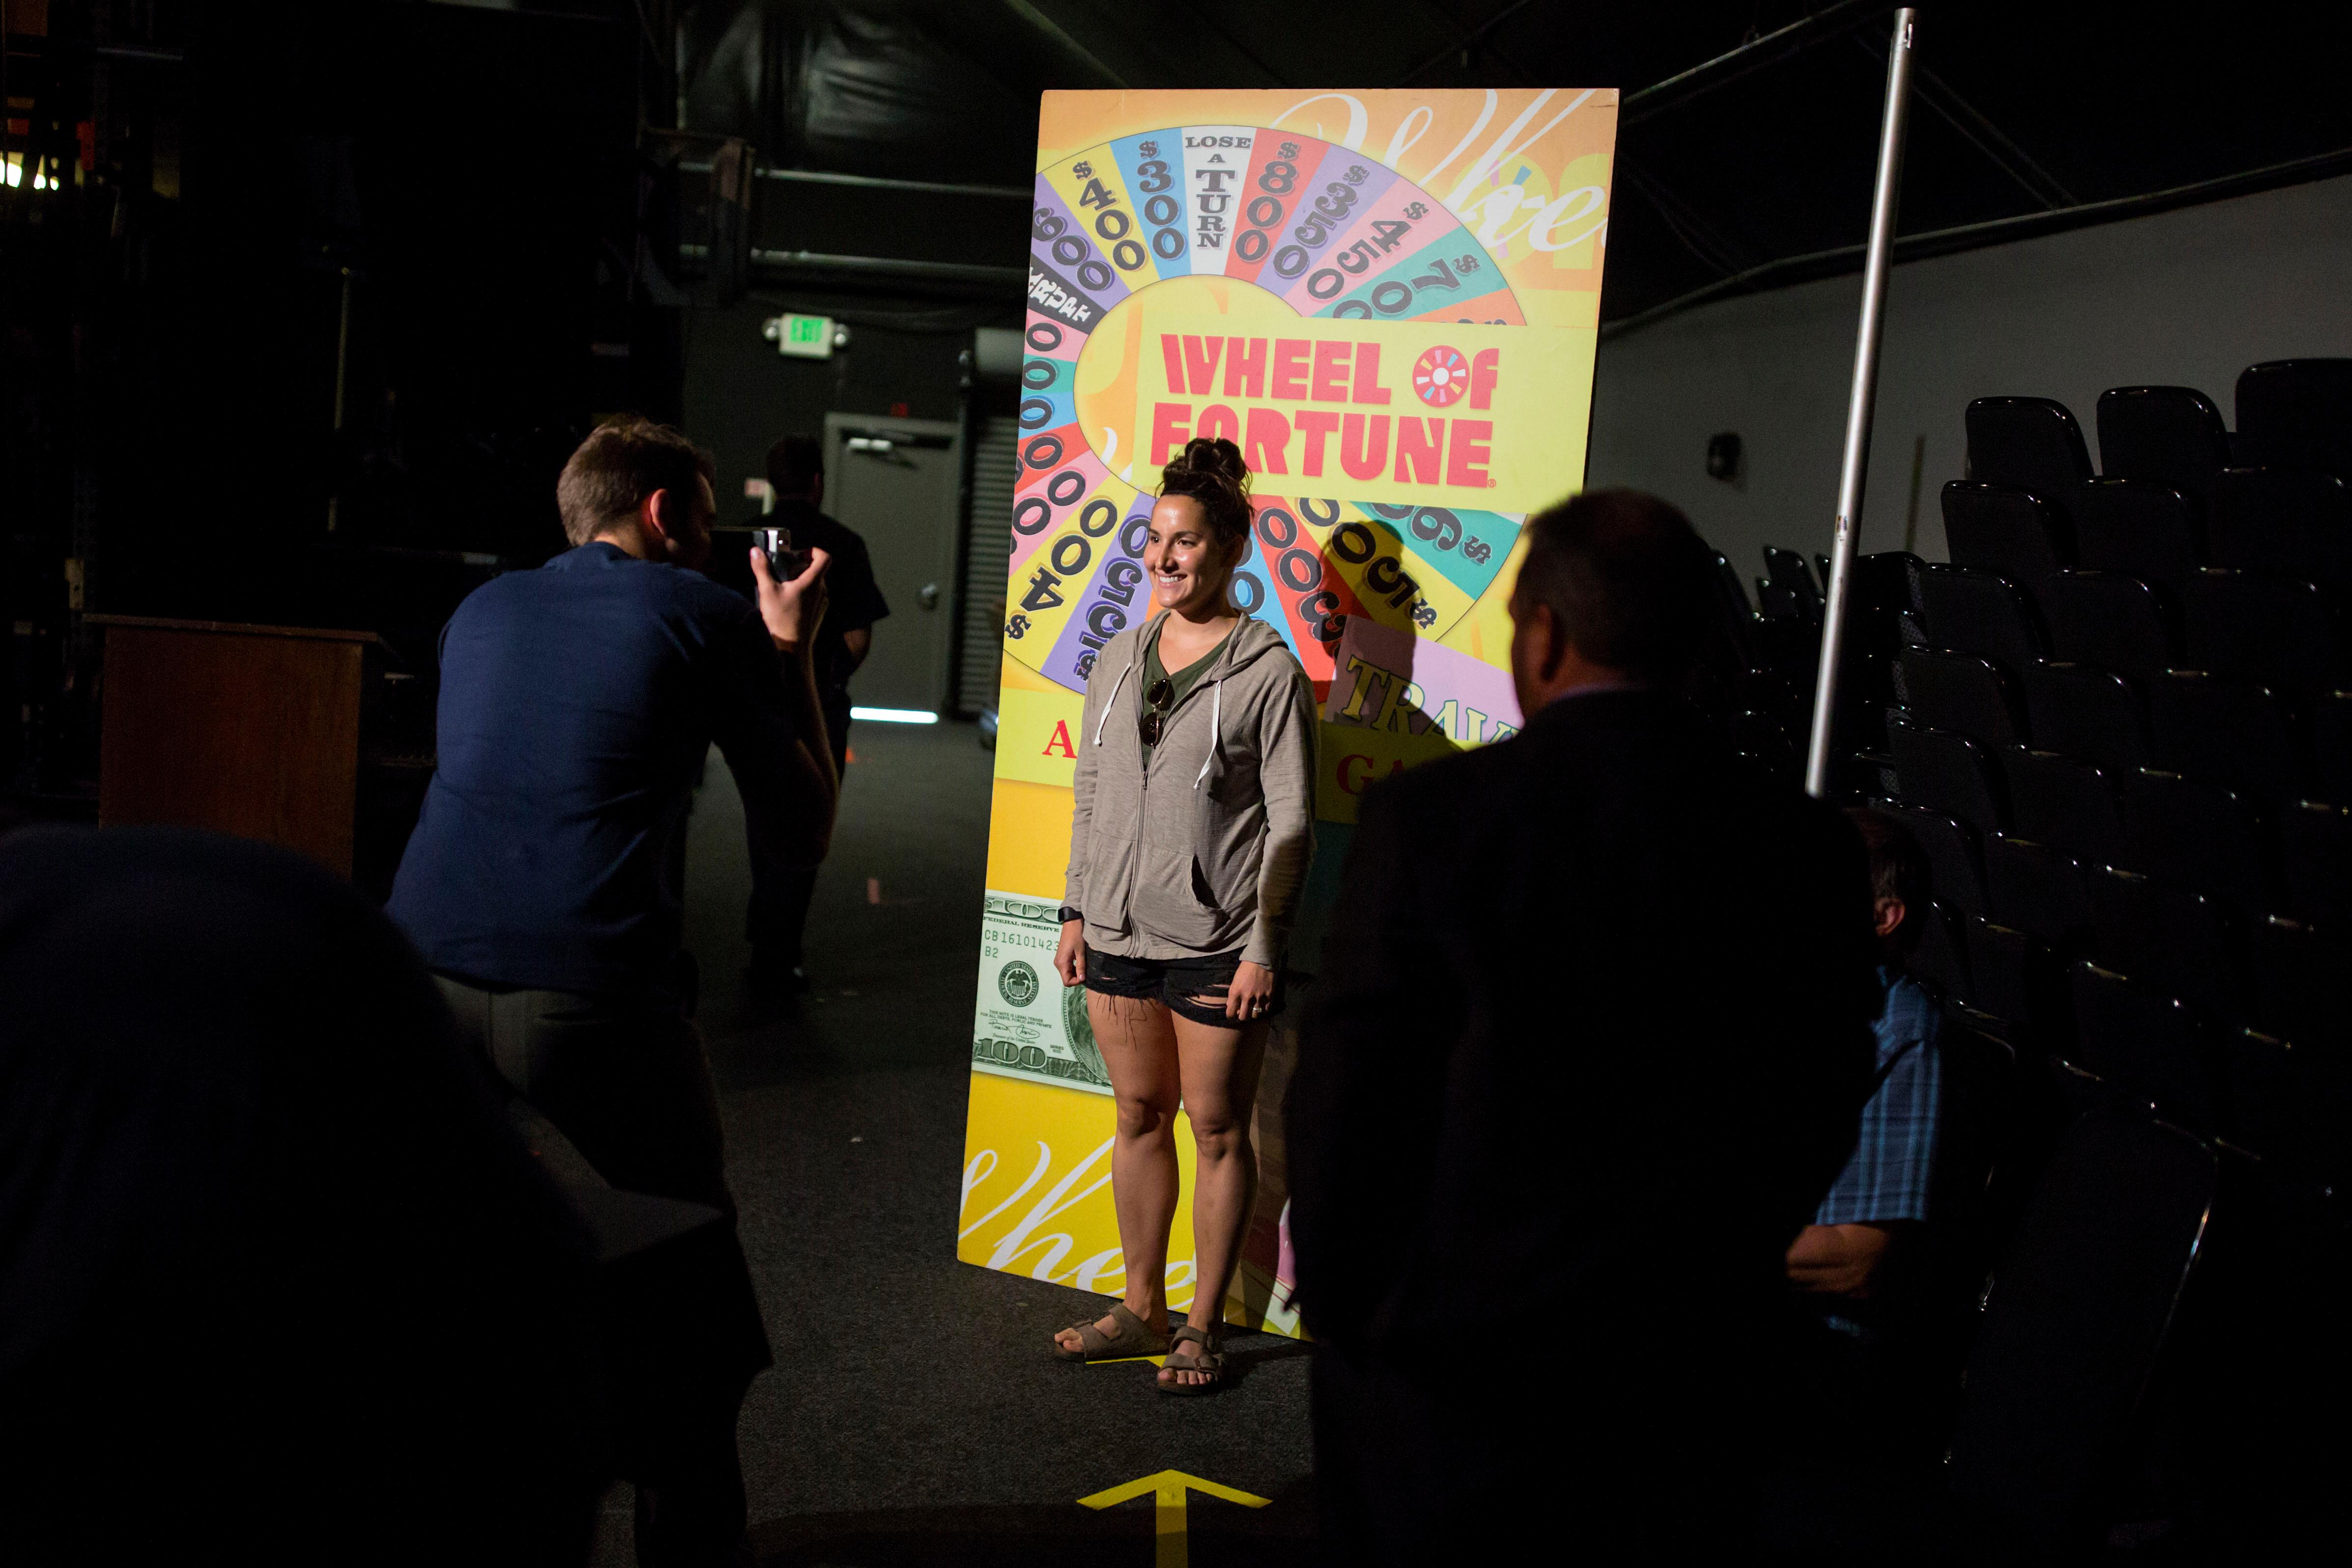 The Wheel of Fortune Wheelmobile made its way through the Emerald Queen Casino on Wednesday night for open auditions to the public for an opportunity to be a part of America's game show. The casting will continue Thursday night. (Sy Bean / Seattle Refined)